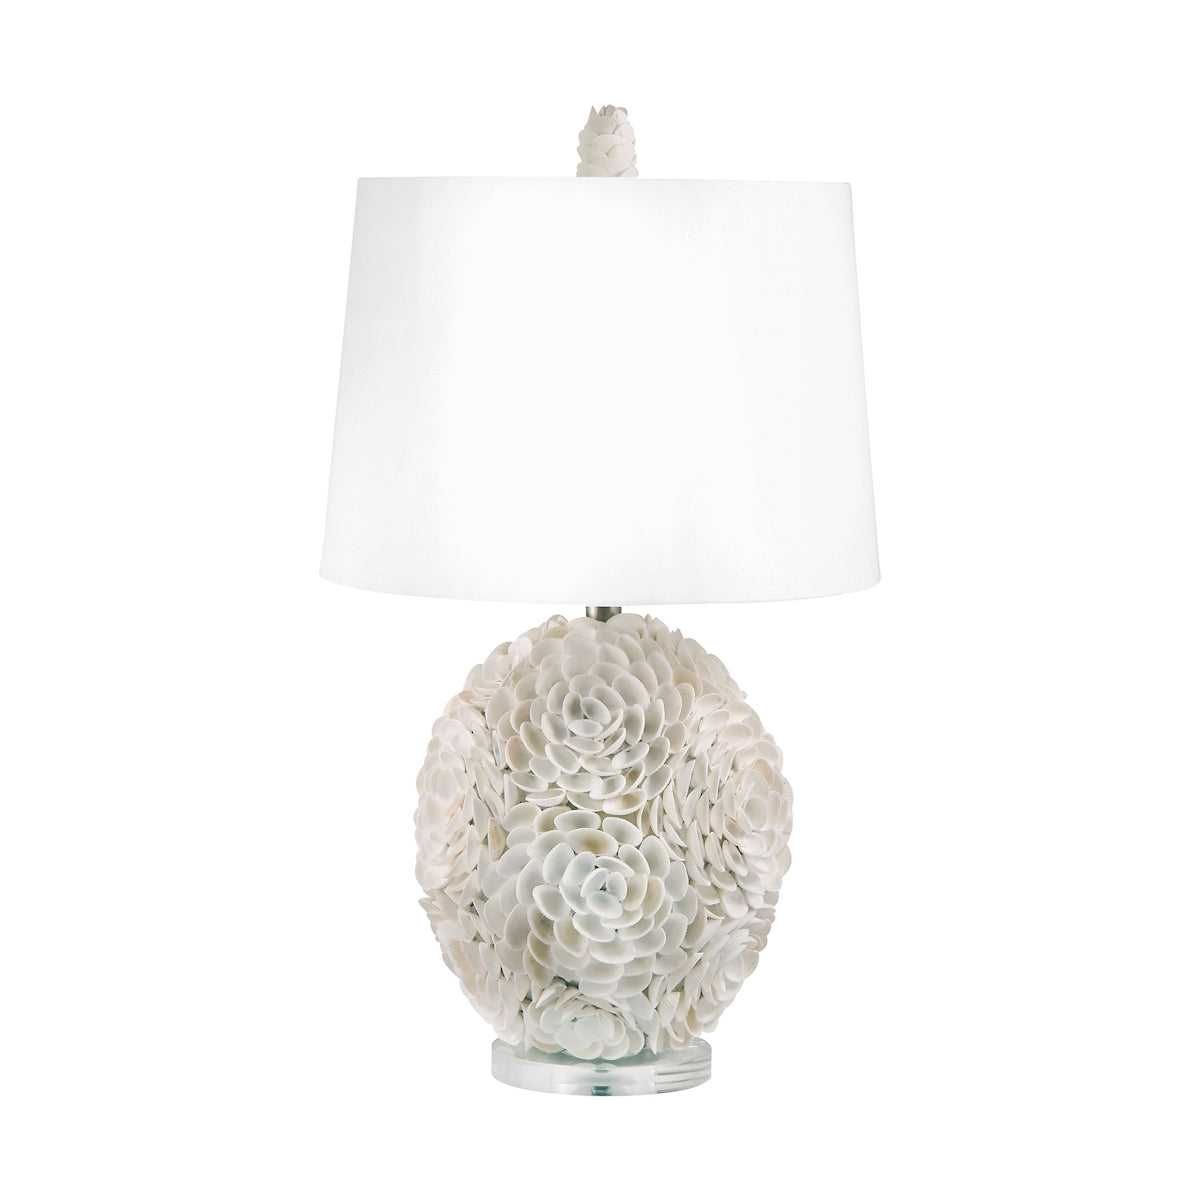 Hand Applied Natural Shells Table Lamp